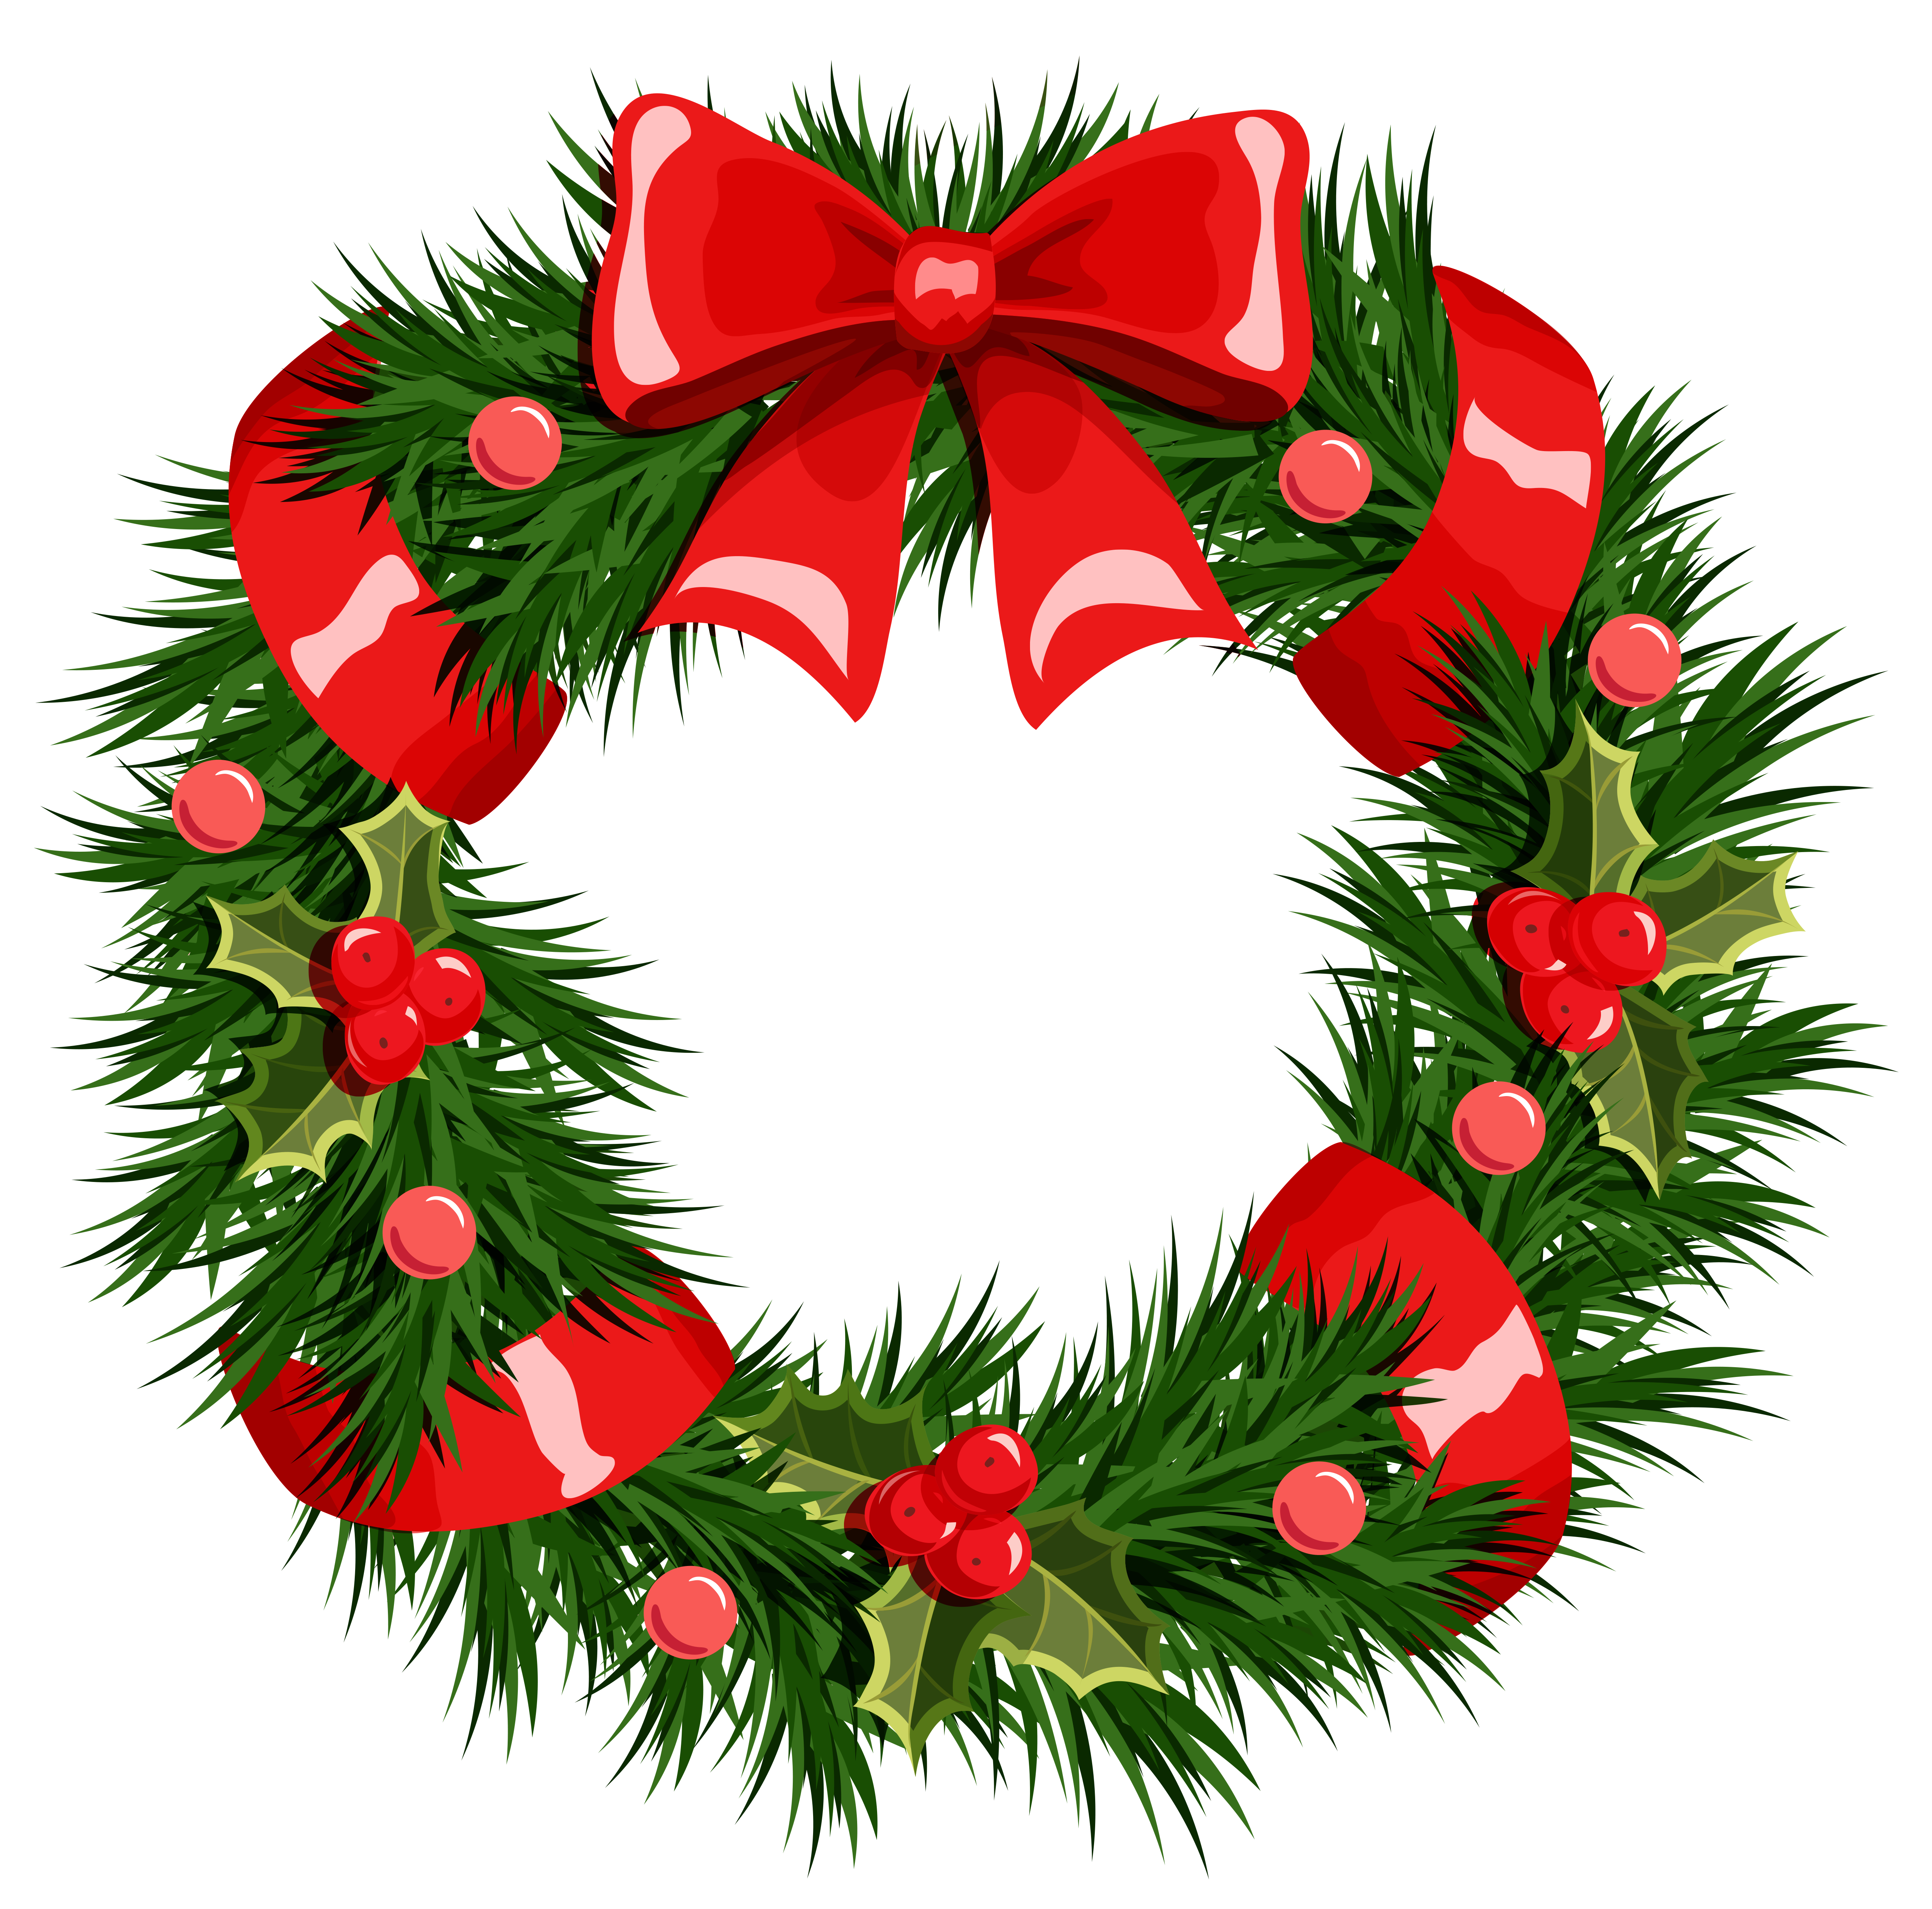 Christmas wreath images free clipart clip art library Transparent Christmas Wreath PNG Clipart   Gallery Yopriceville ... clip art library